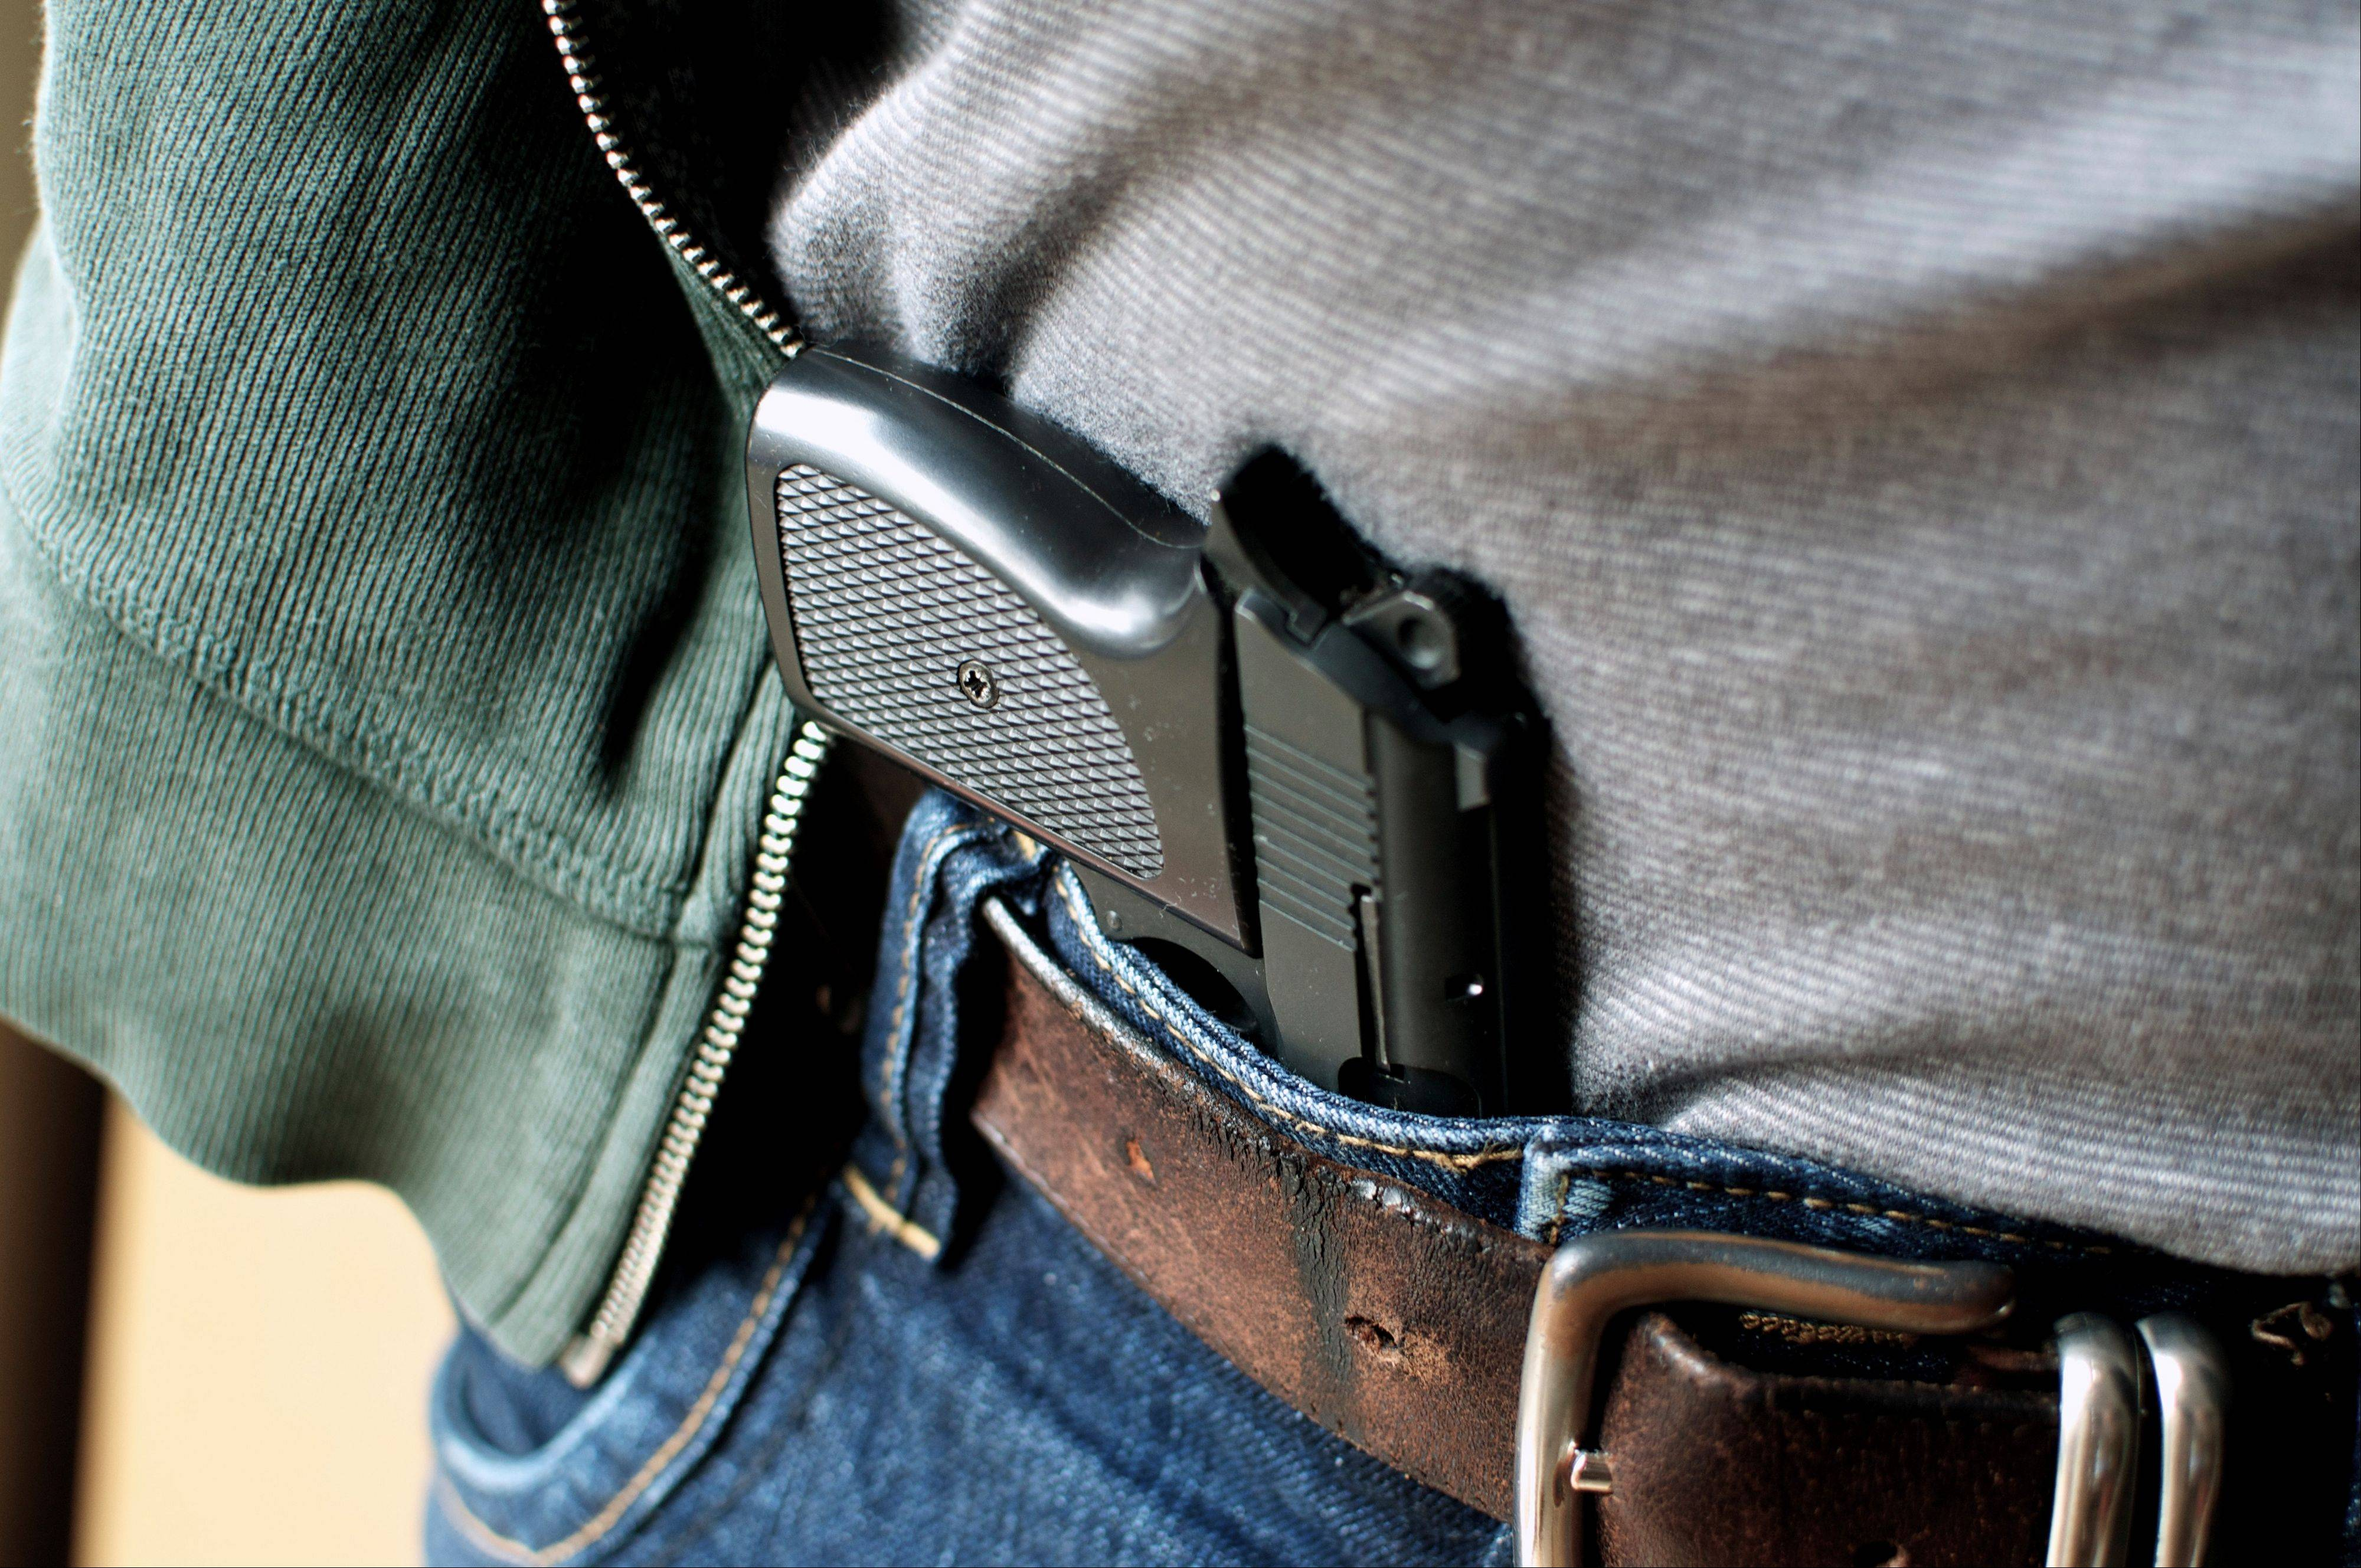 Individual suburbs wouldn't get to set their own rules for carrying a concealed firearm under the plan lawmakers have sent Gov. Pat Quinn. And suburban gun owners wouldn't be allowed to carry loaded guns on public transit or in schools, parks and other places.